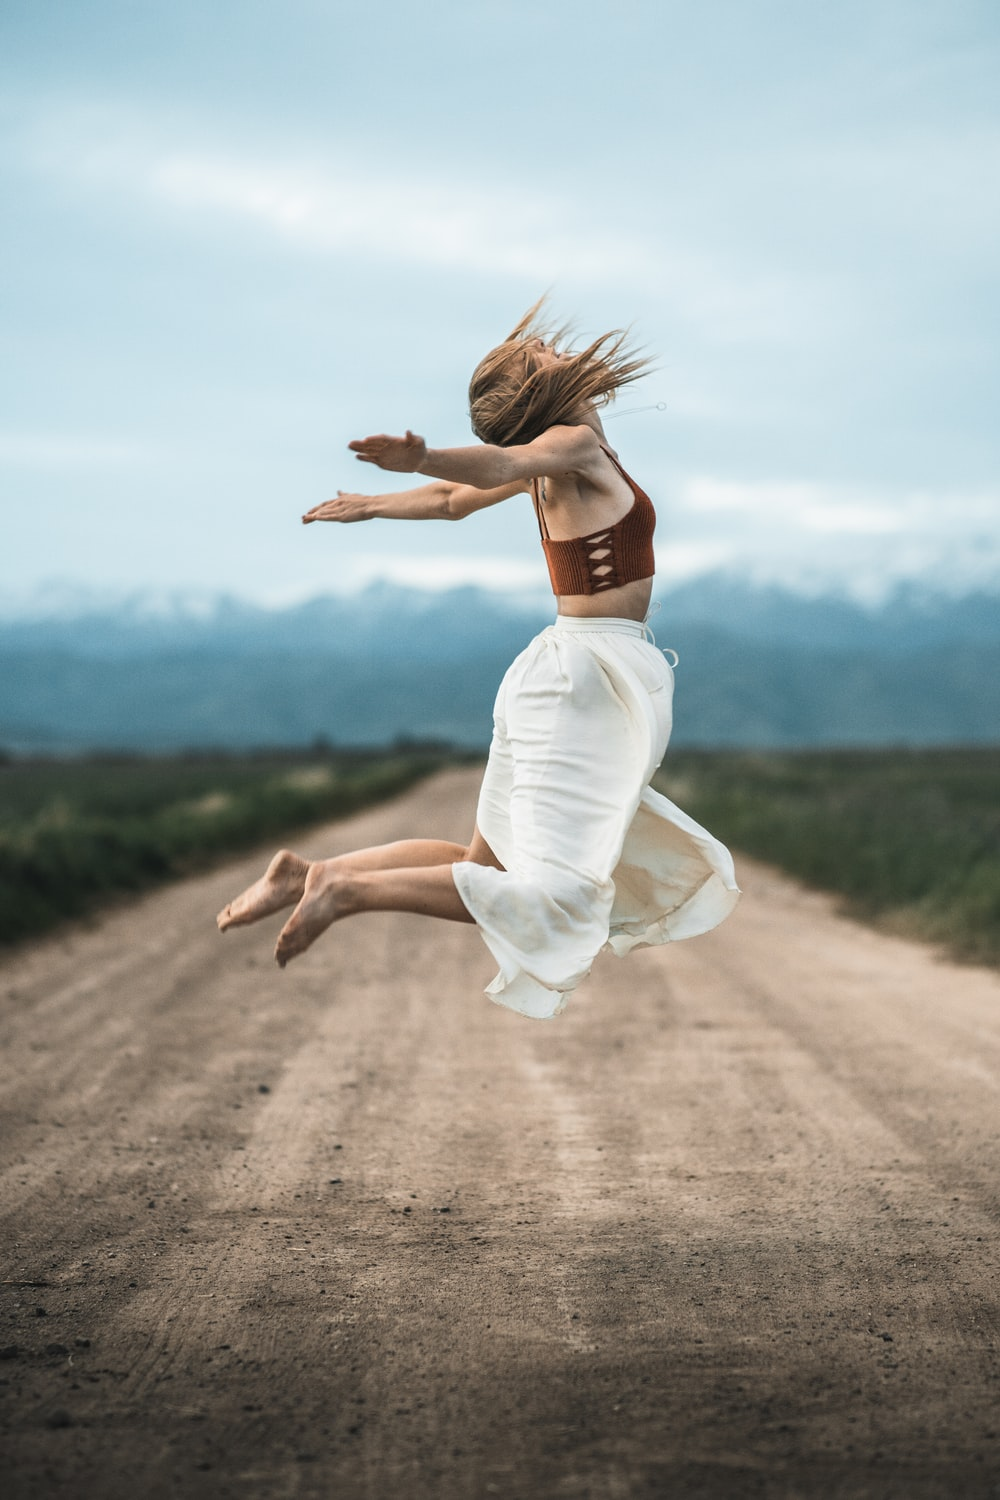 woman in white dress running on brown dirt road during daytime